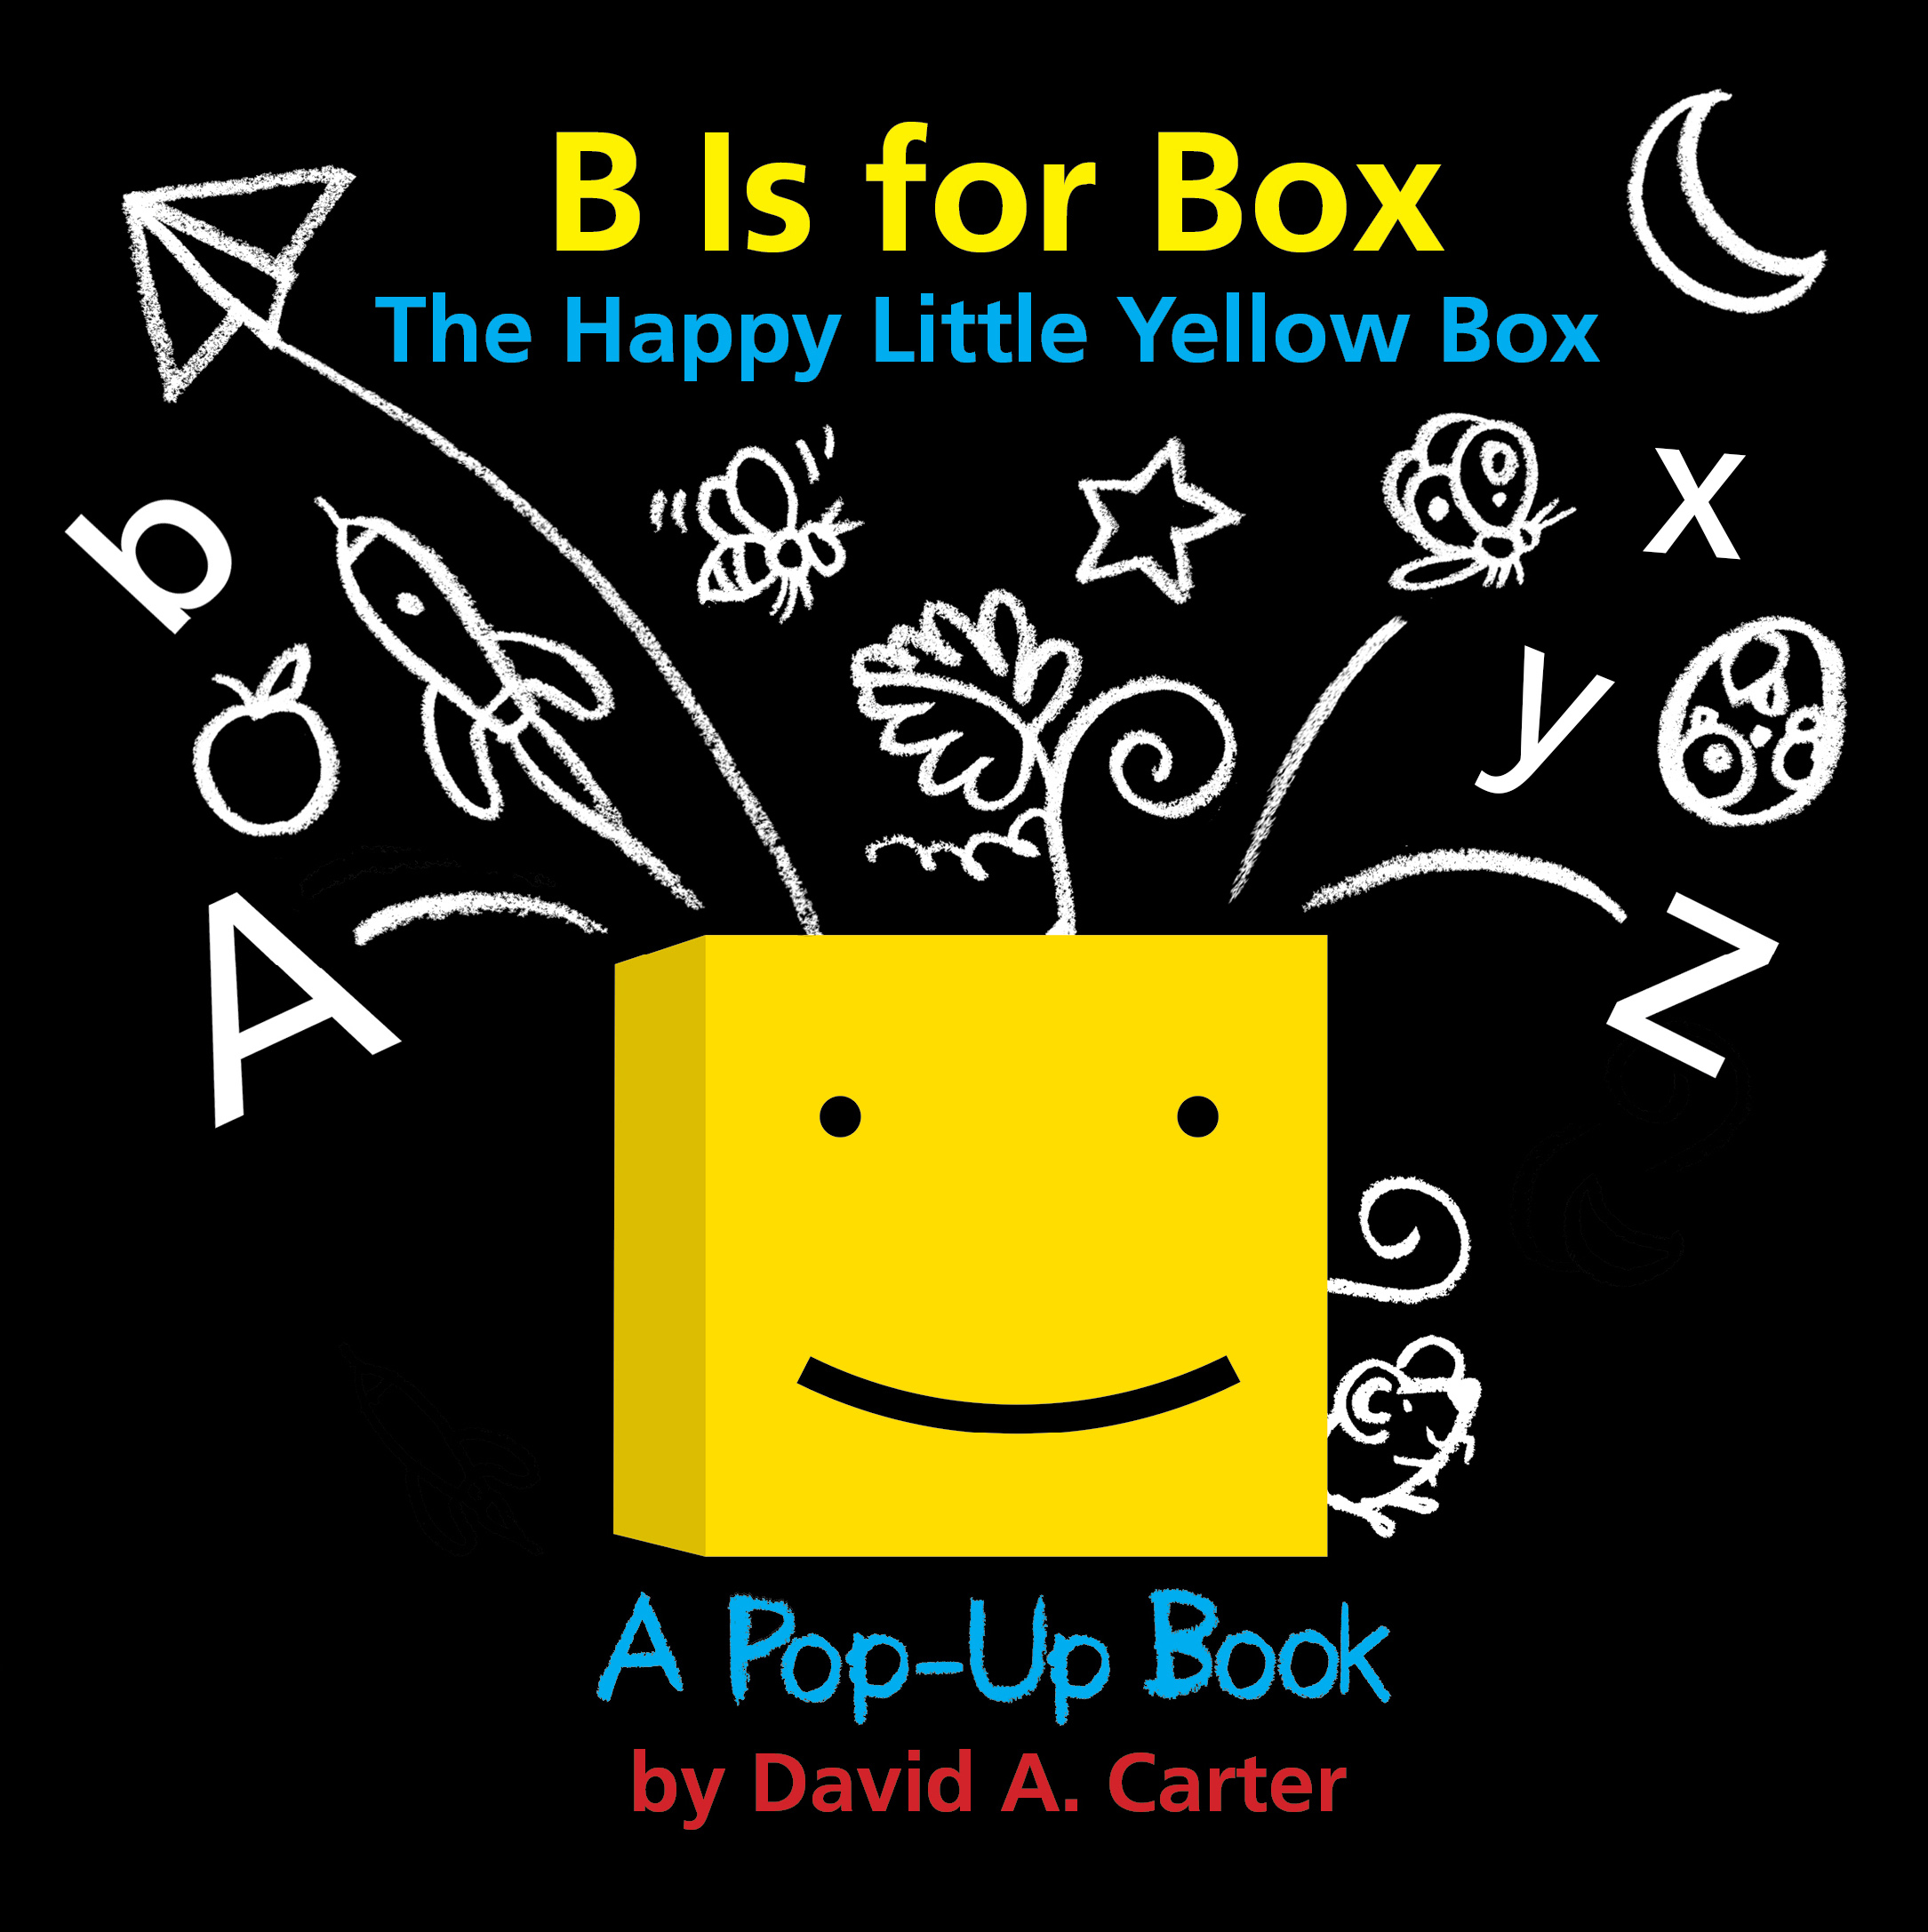 B-is-for-box-the-happy-little-yellow-box-9781481402958_hr